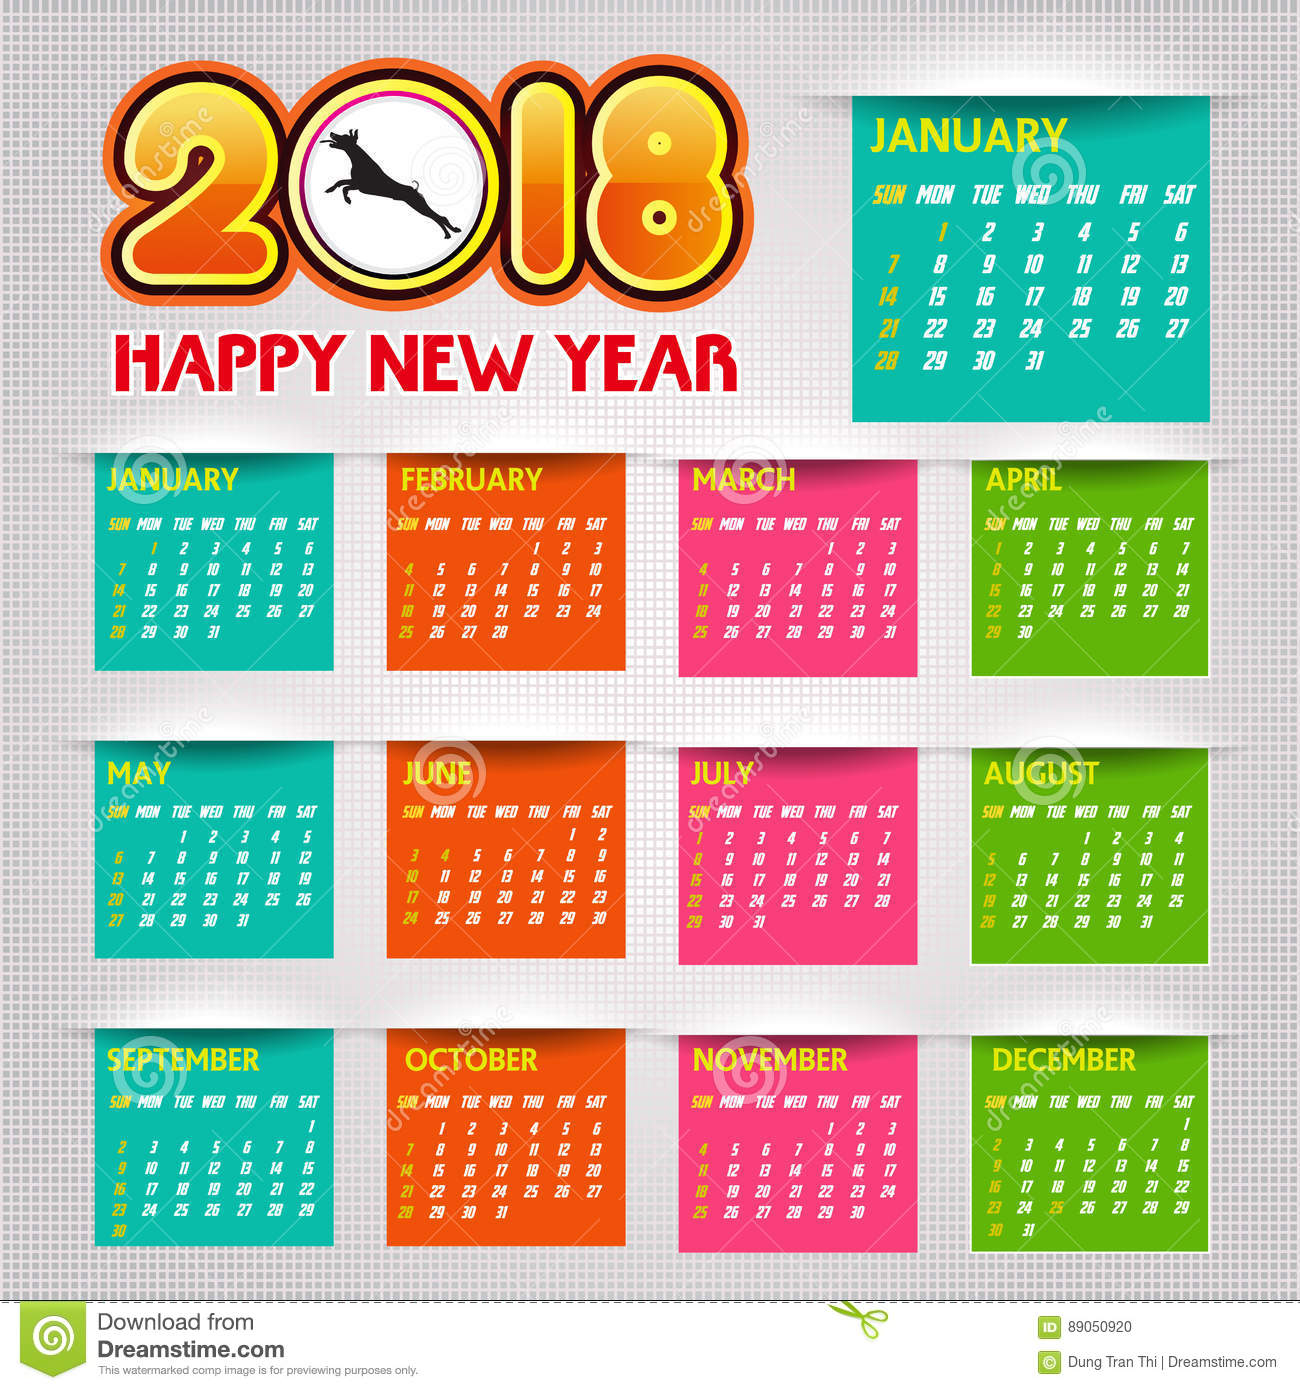 Calendar Illustration Vector : Calendar happy new year vector illustration stock